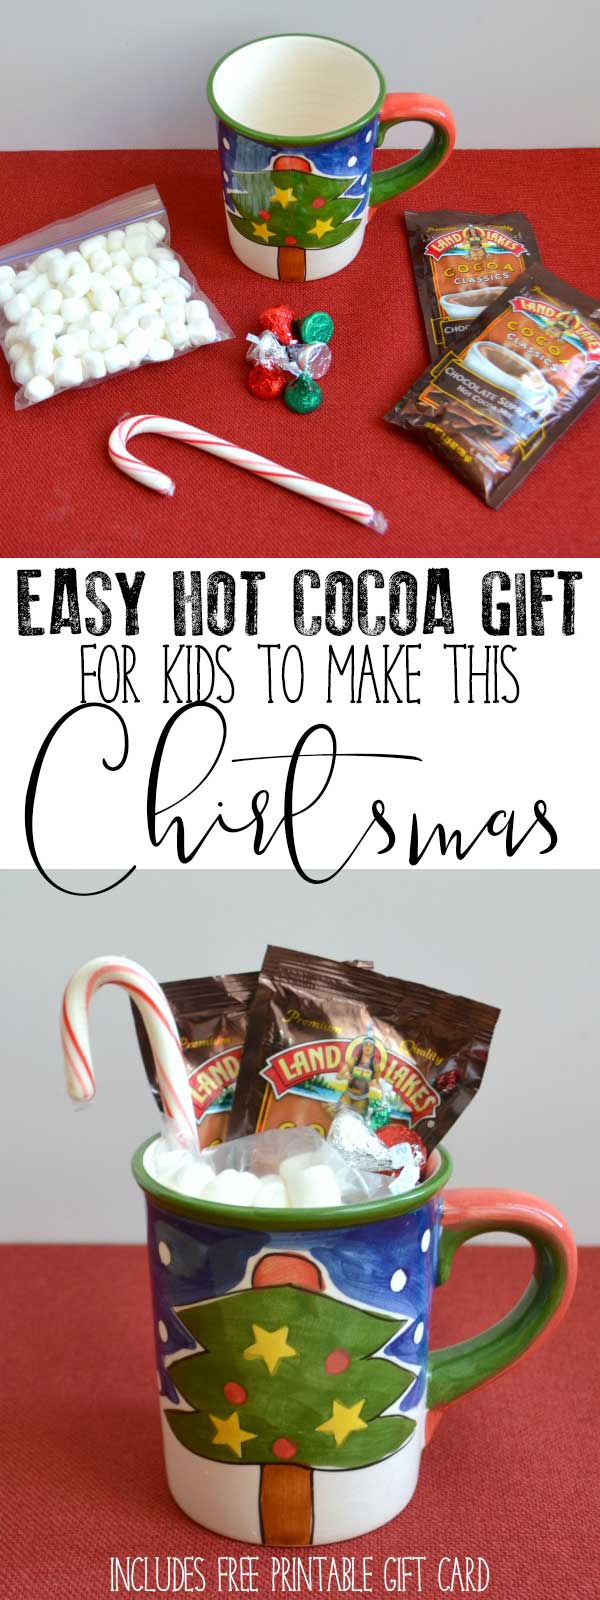 Easy Hot Cocoa Gift Inspired by The Jolly Christmas Postman